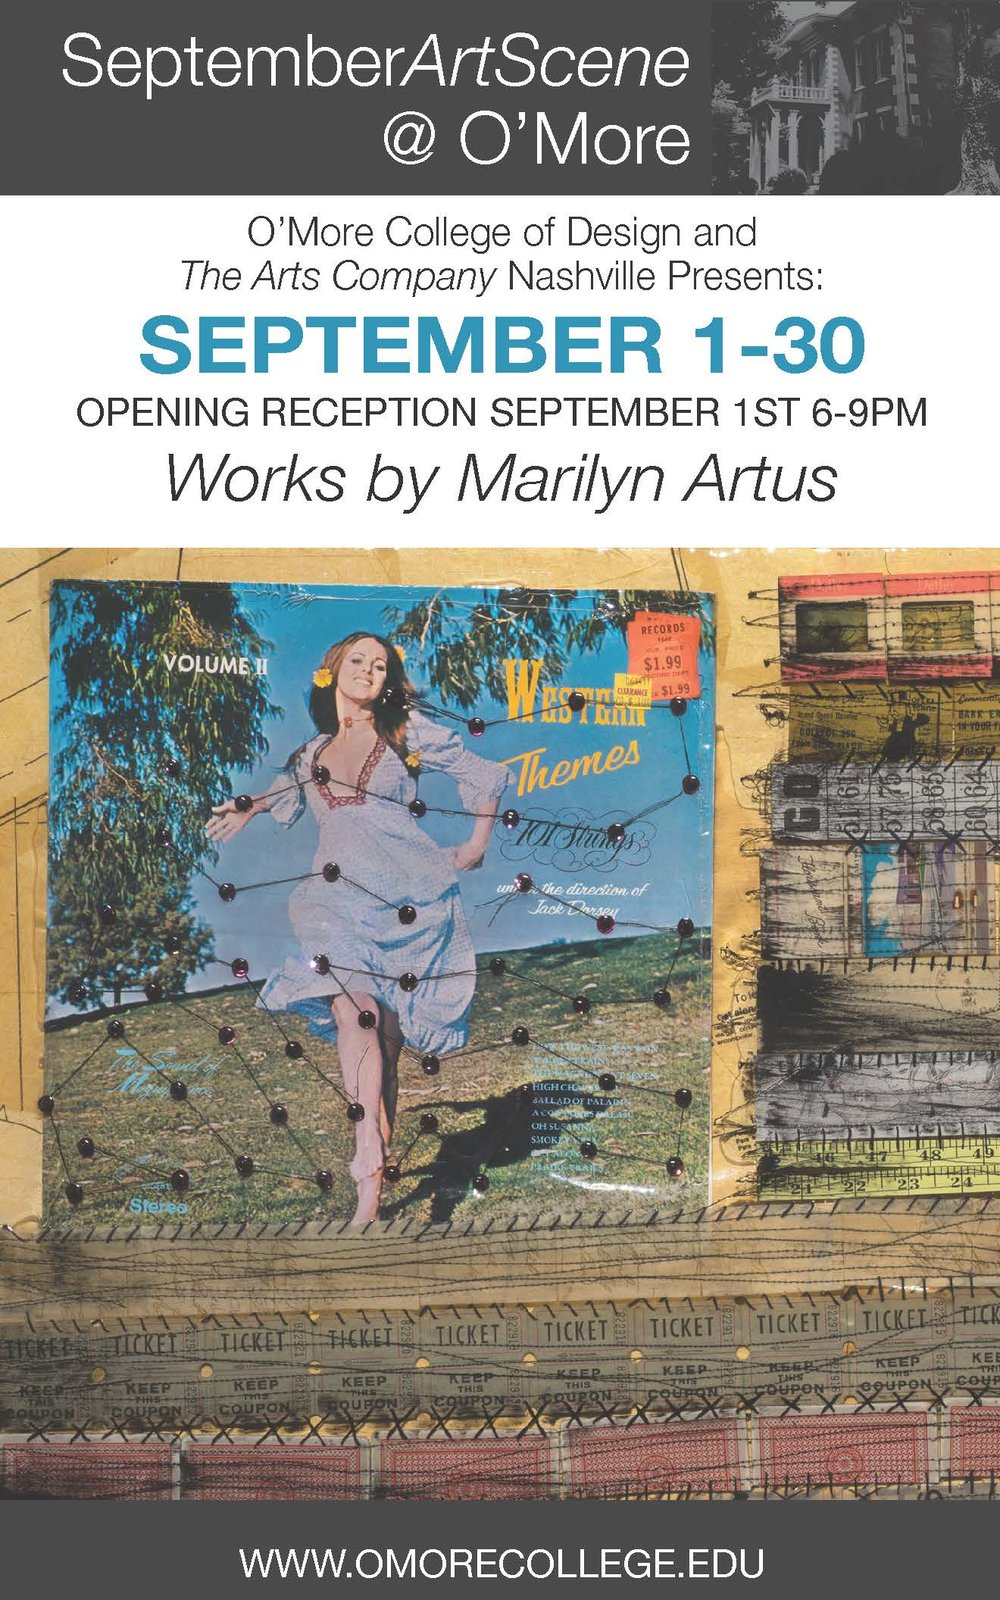 Sept+ArtScene+digital+card.jpg